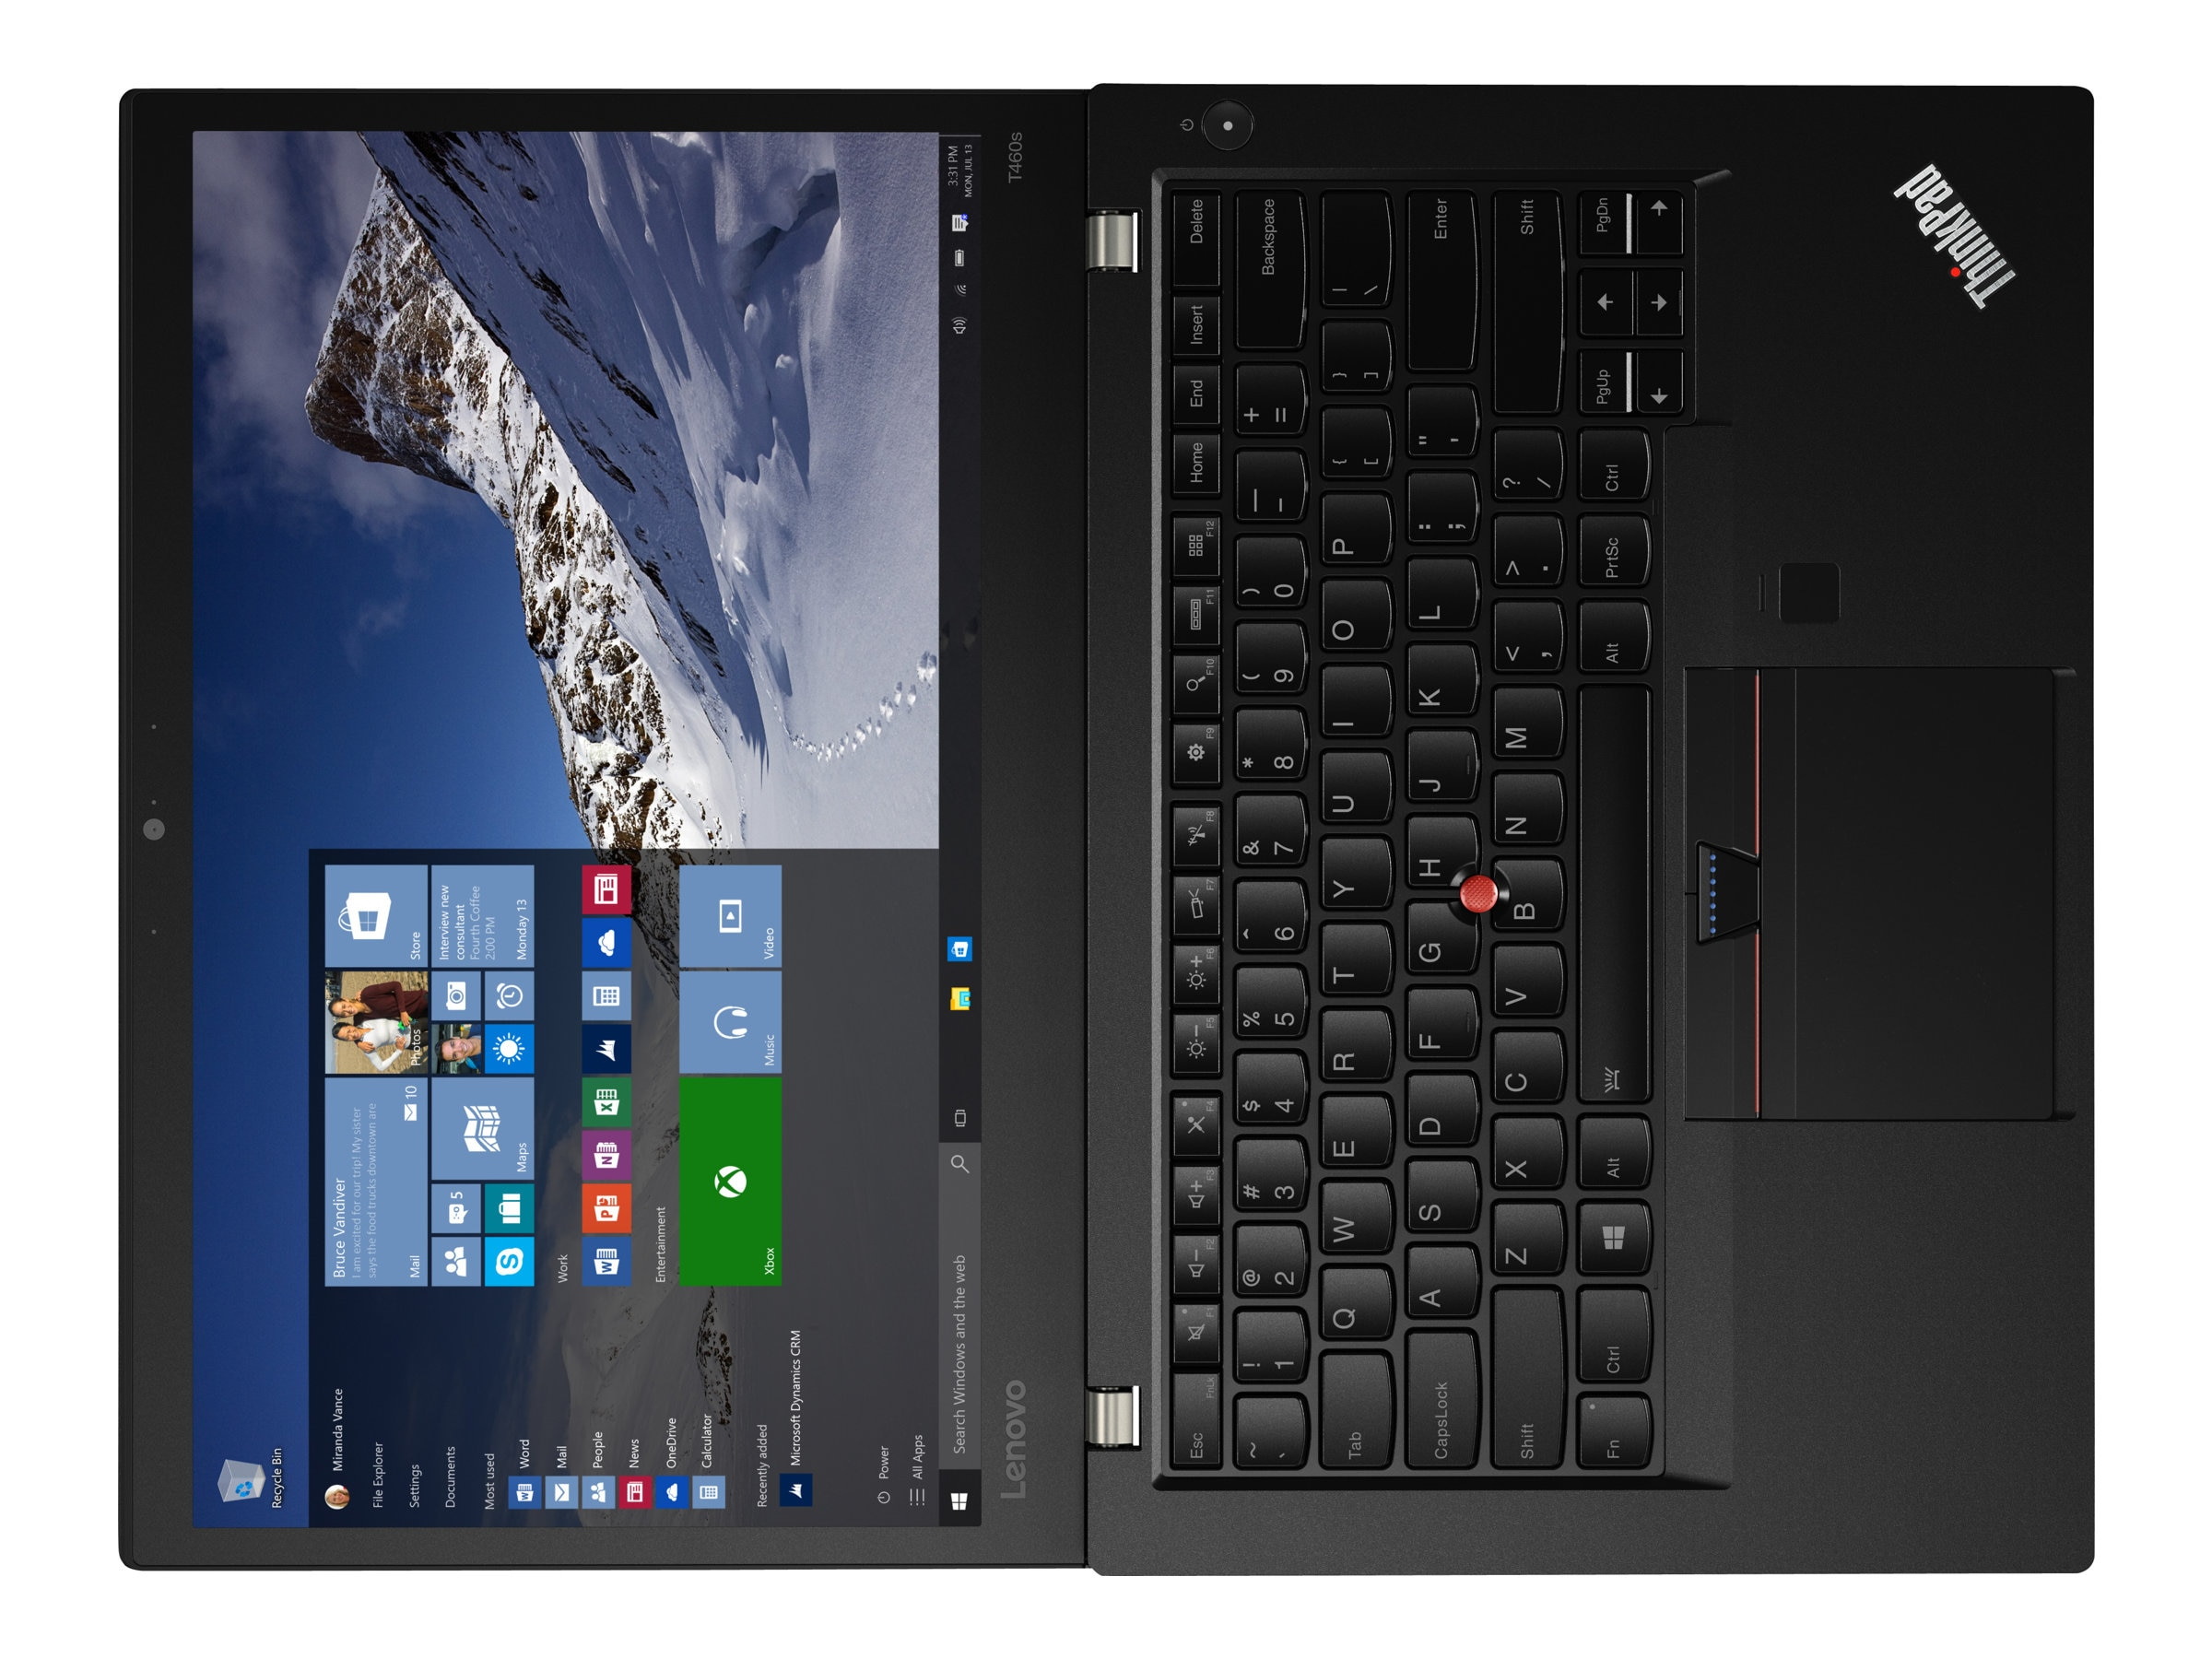 Lenovo TopSeller ThinkPad T460s 2.6GHz Core i7 14in display, 20F9004PUS